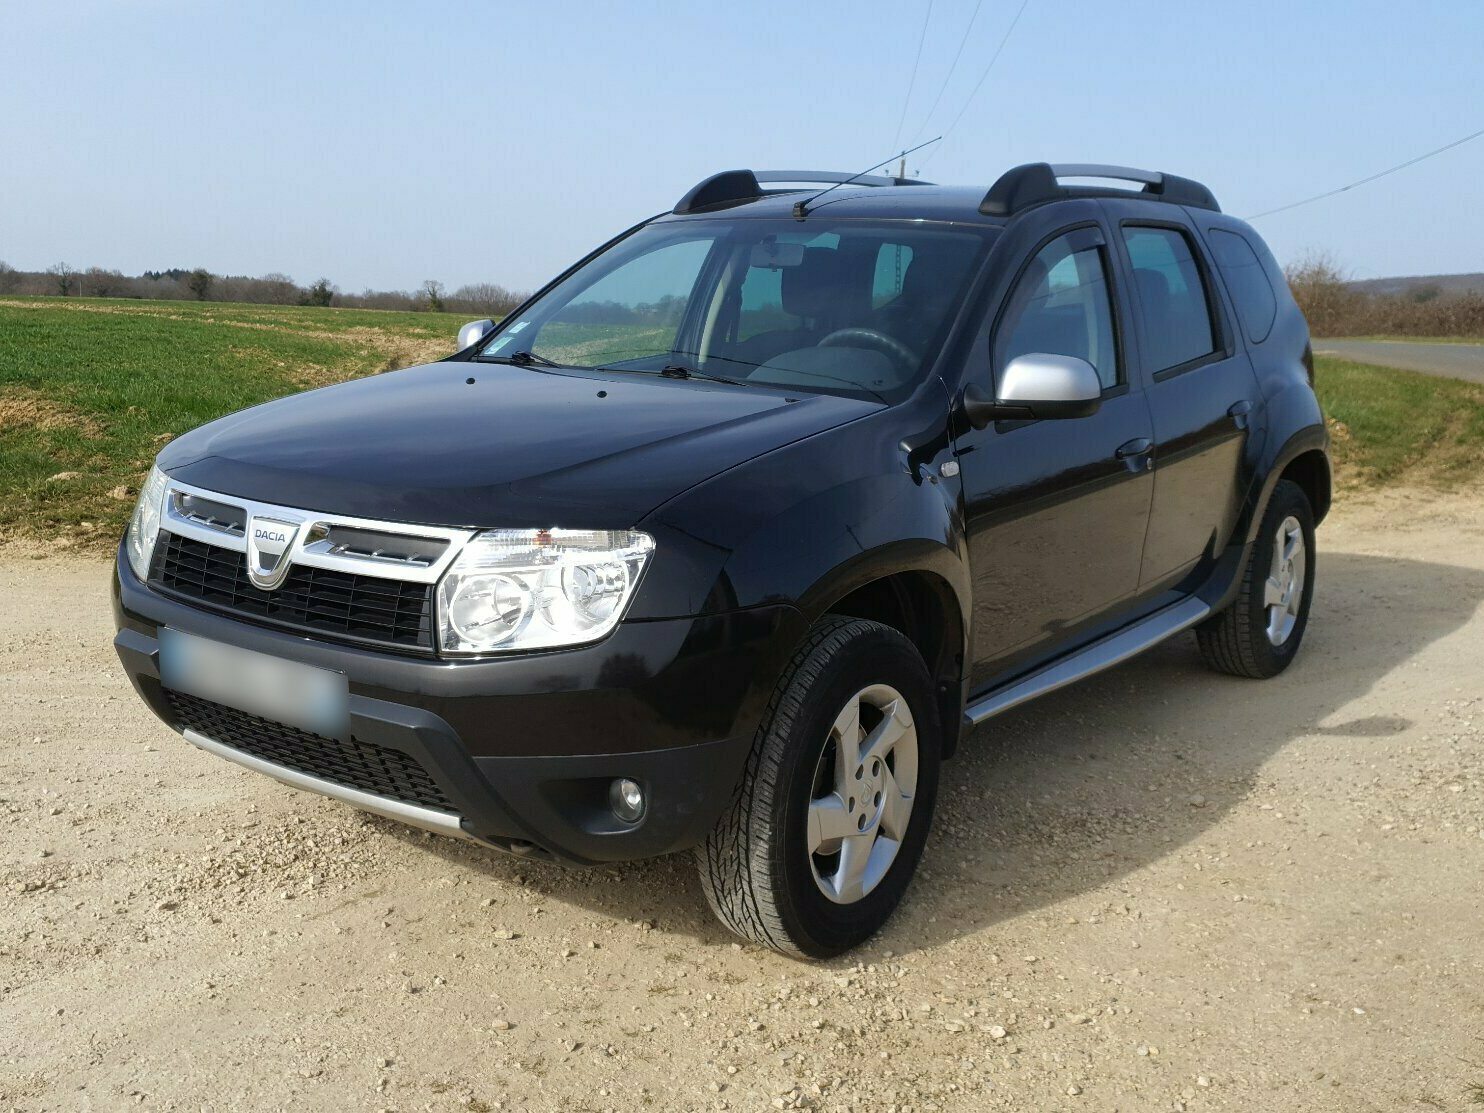 DACIA DUSTER 1.5 DCI 85 AMBIANCE 4X2